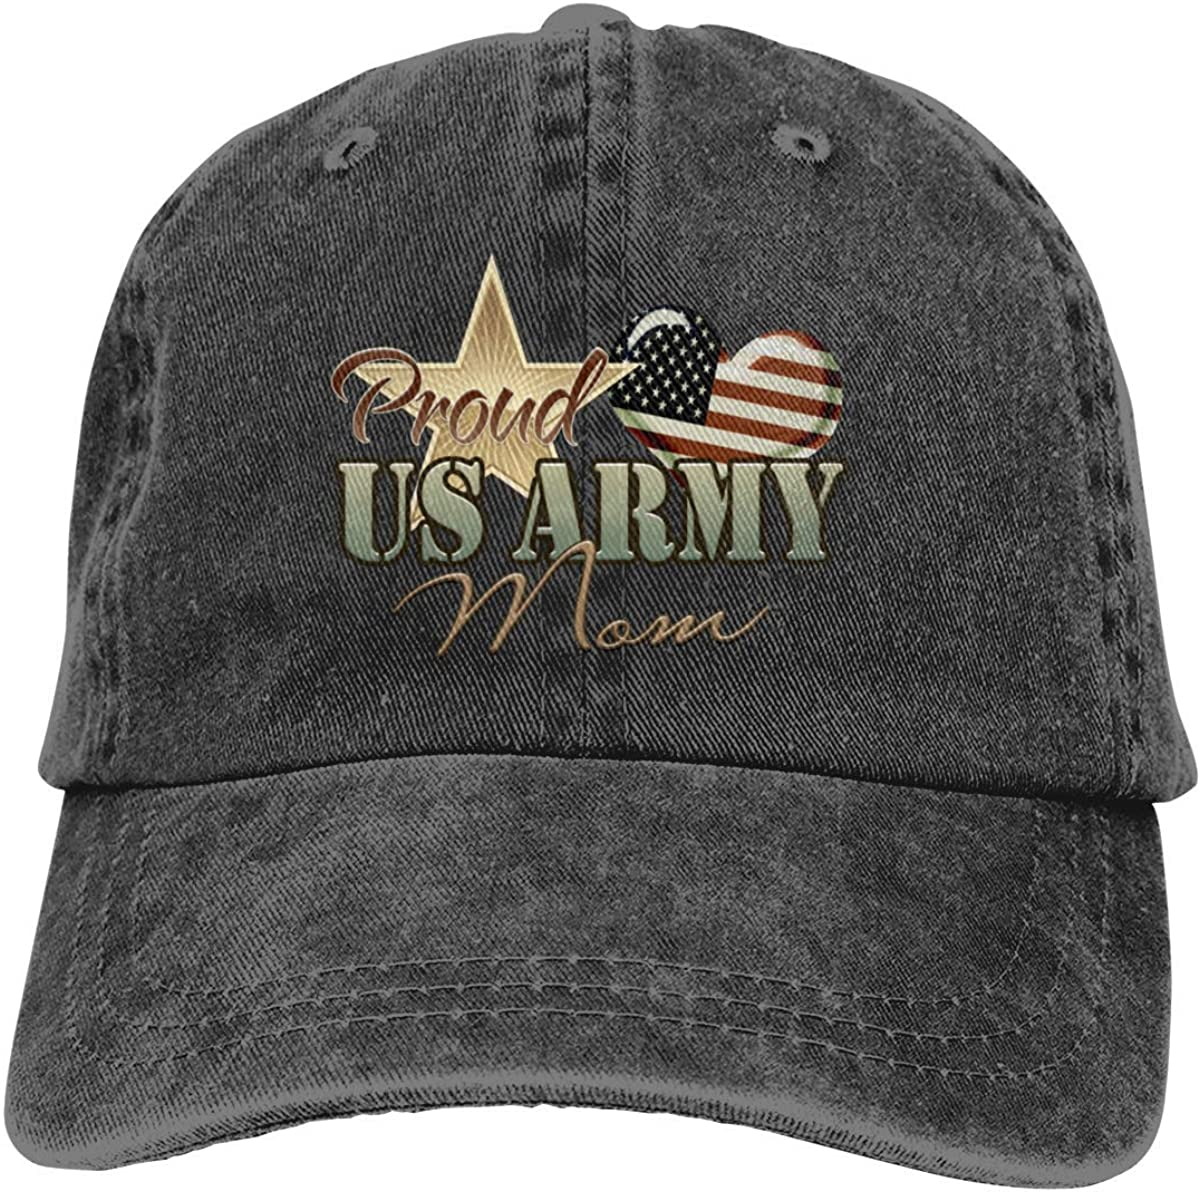 Adult Dad Cap SUJQNGC Unisex Unstructured Cotton Adjustable Hat